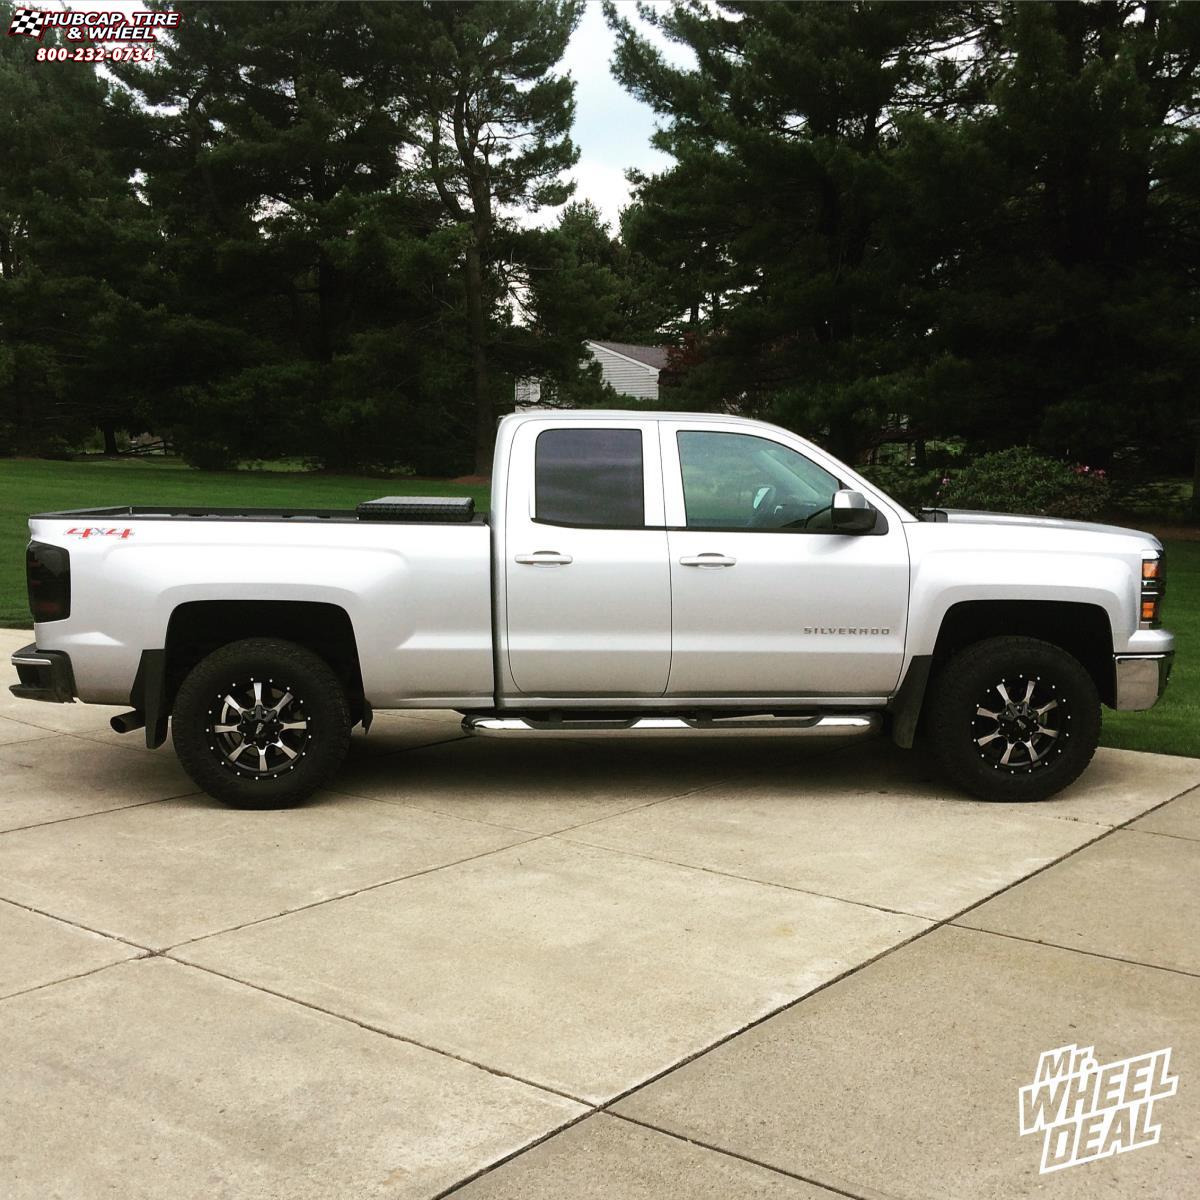 2018 Ford Raptor Color Options besides 2017 Ford Raptor Rear Bumper R117321370103 furthermore 262455608206 furthermore Gh Html moreover Chevrolet Silverado 1500 Xd Series Xd128 Machete X Wheels Rims 4345. on 2009 chevy silverado accessories